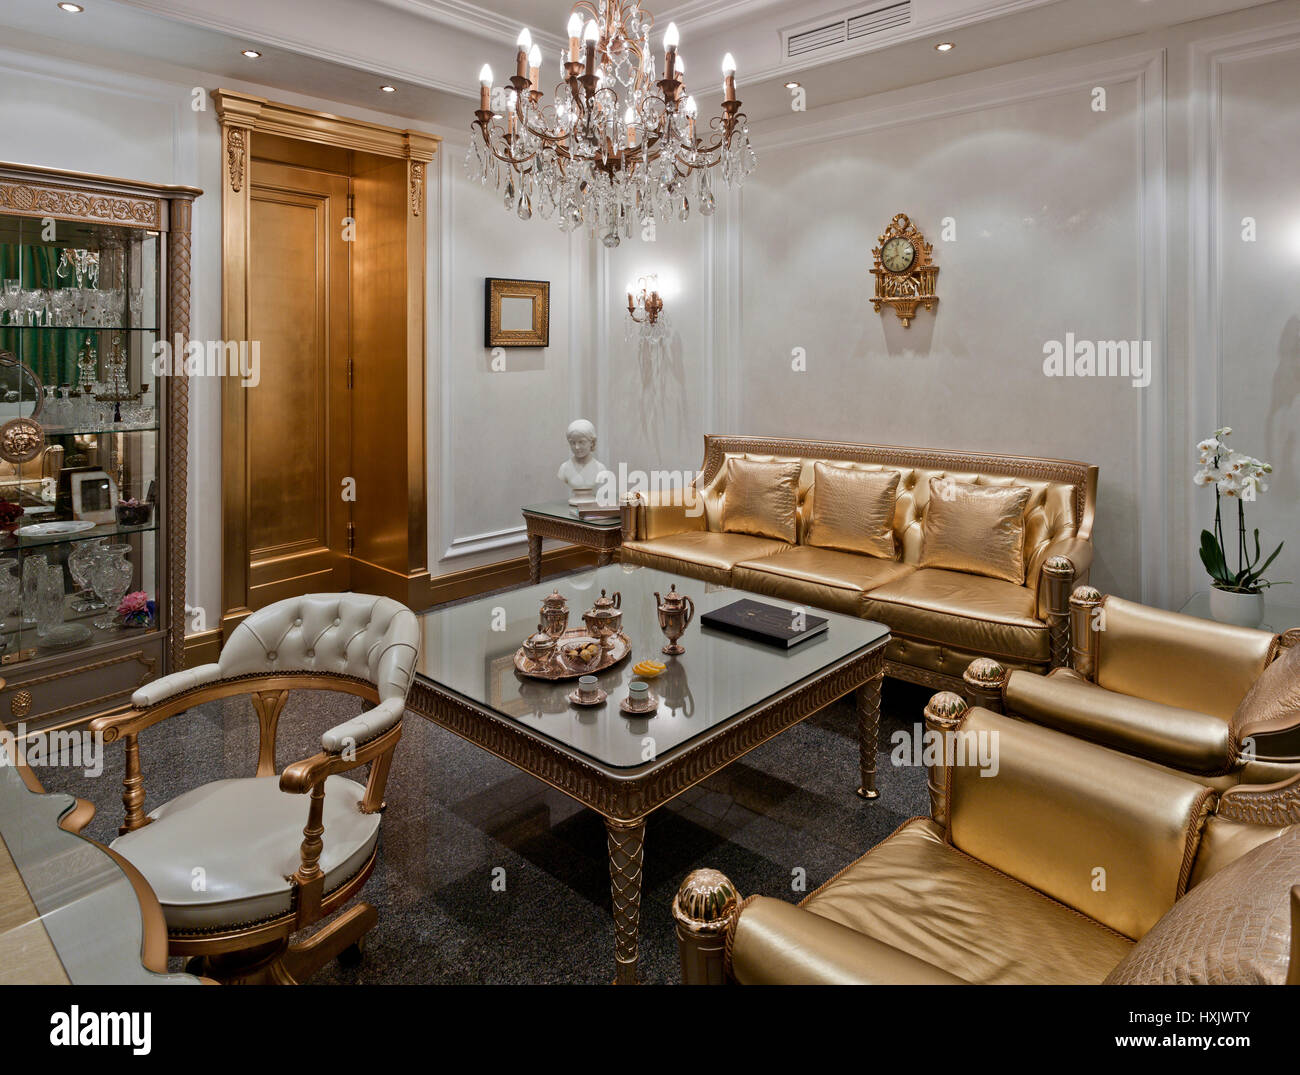 showroom luxus interieur in moskau im klassischen stil mit einem gold m bel stockfoto bild. Black Bedroom Furniture Sets. Home Design Ideas